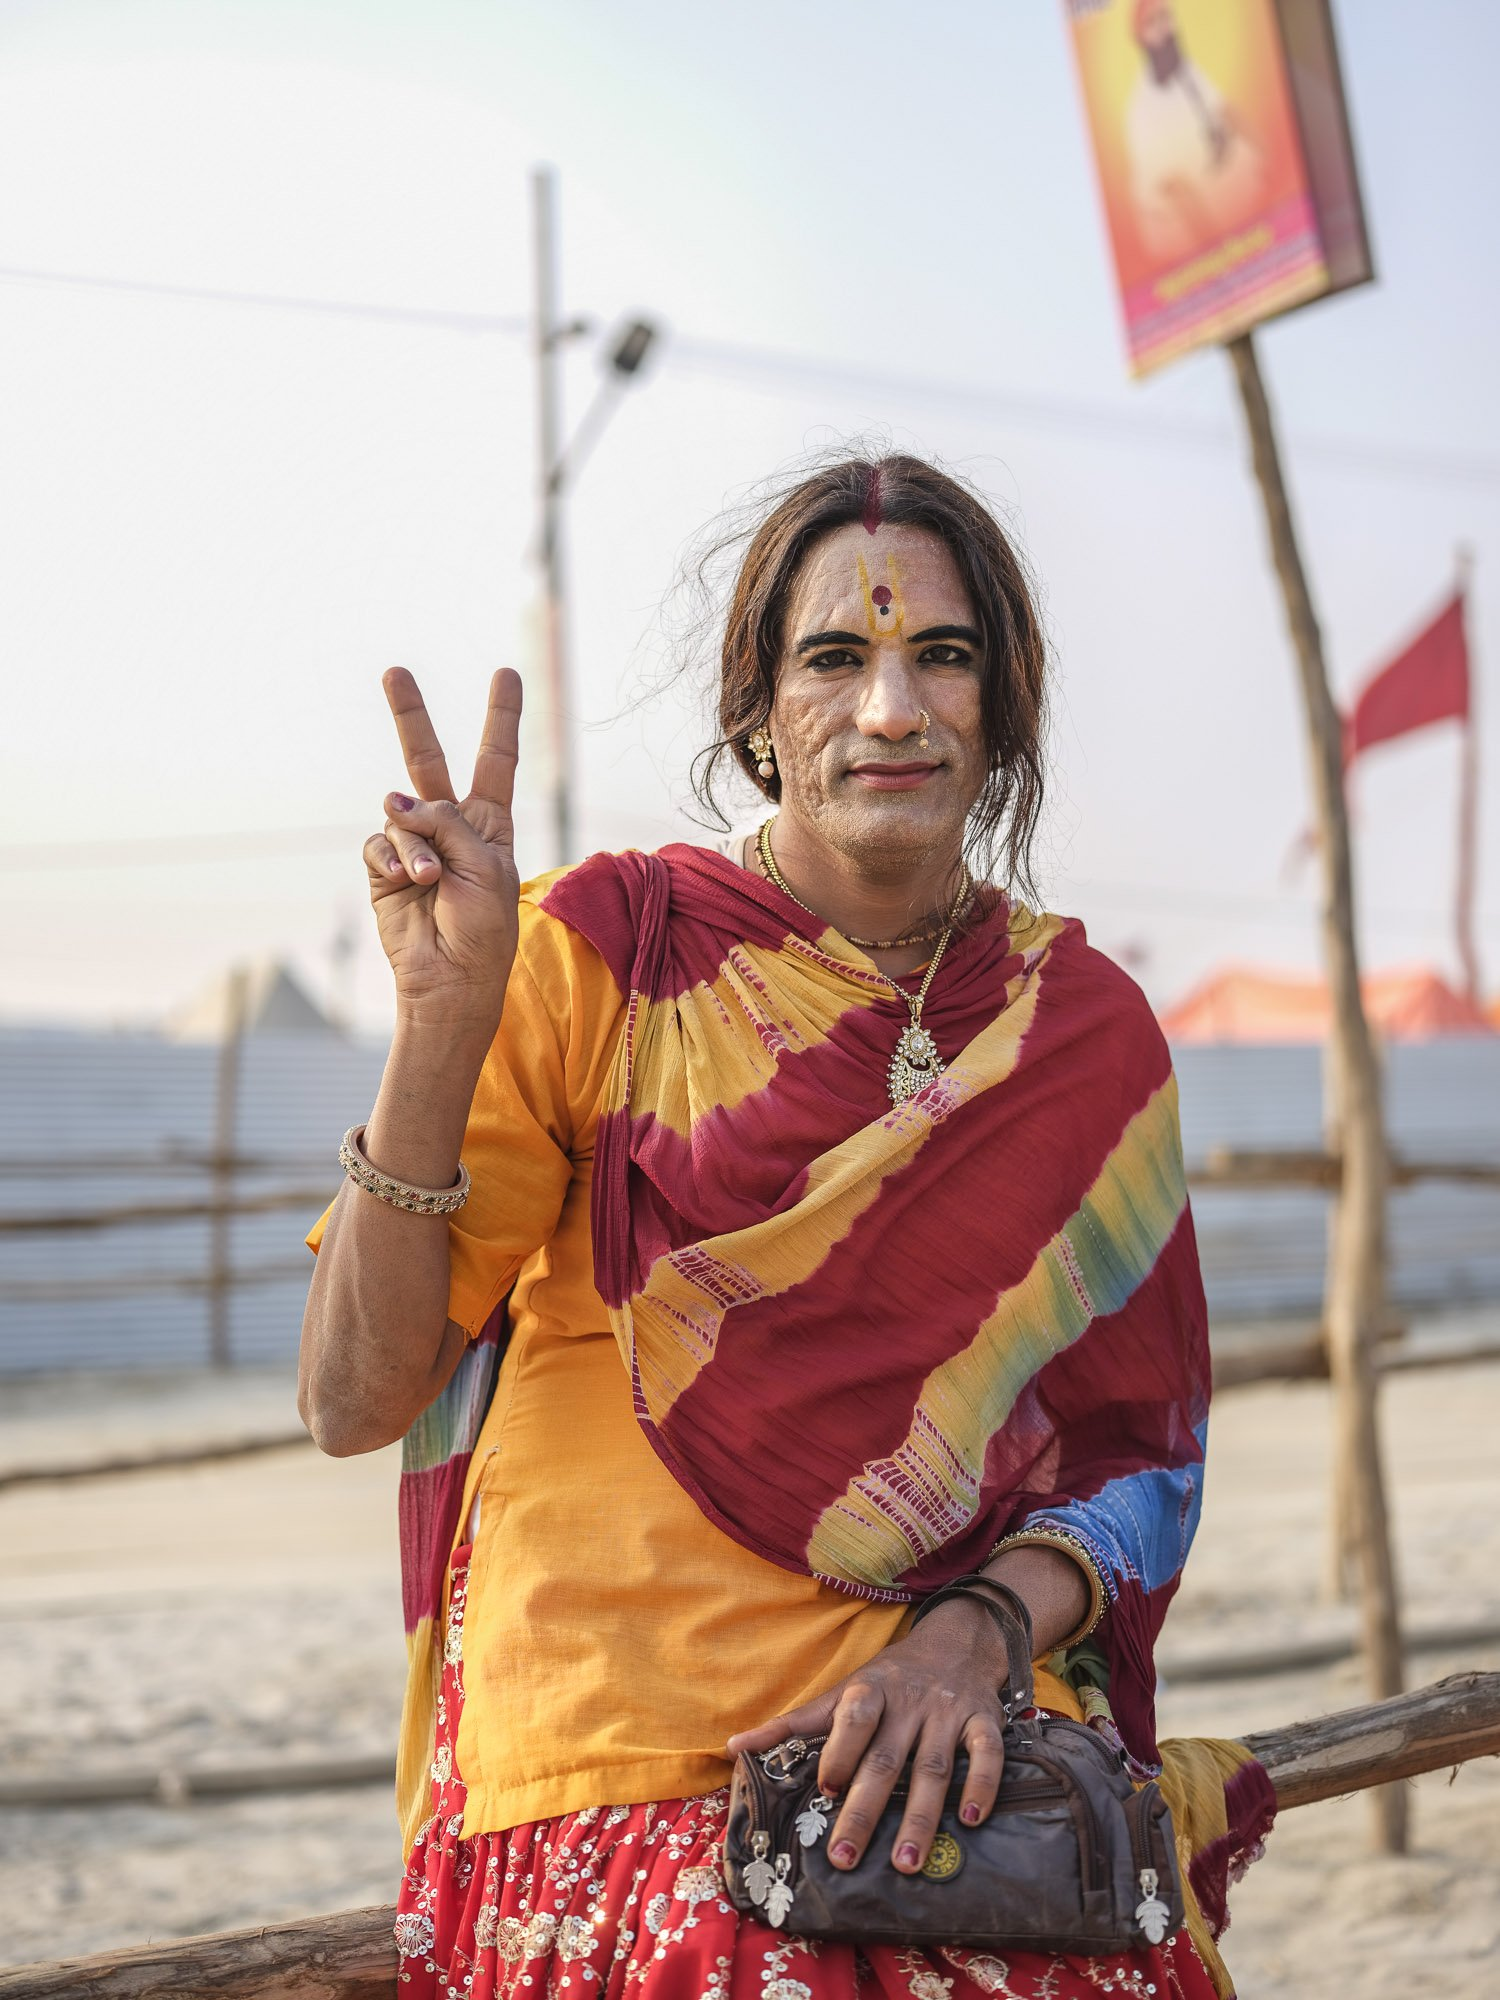 transgender portrait camp pilgrims Kumbh mela 2019 India Allahabad Prayagraj Ardh hindu religious Festival event rivers photographer jose jeuland photography